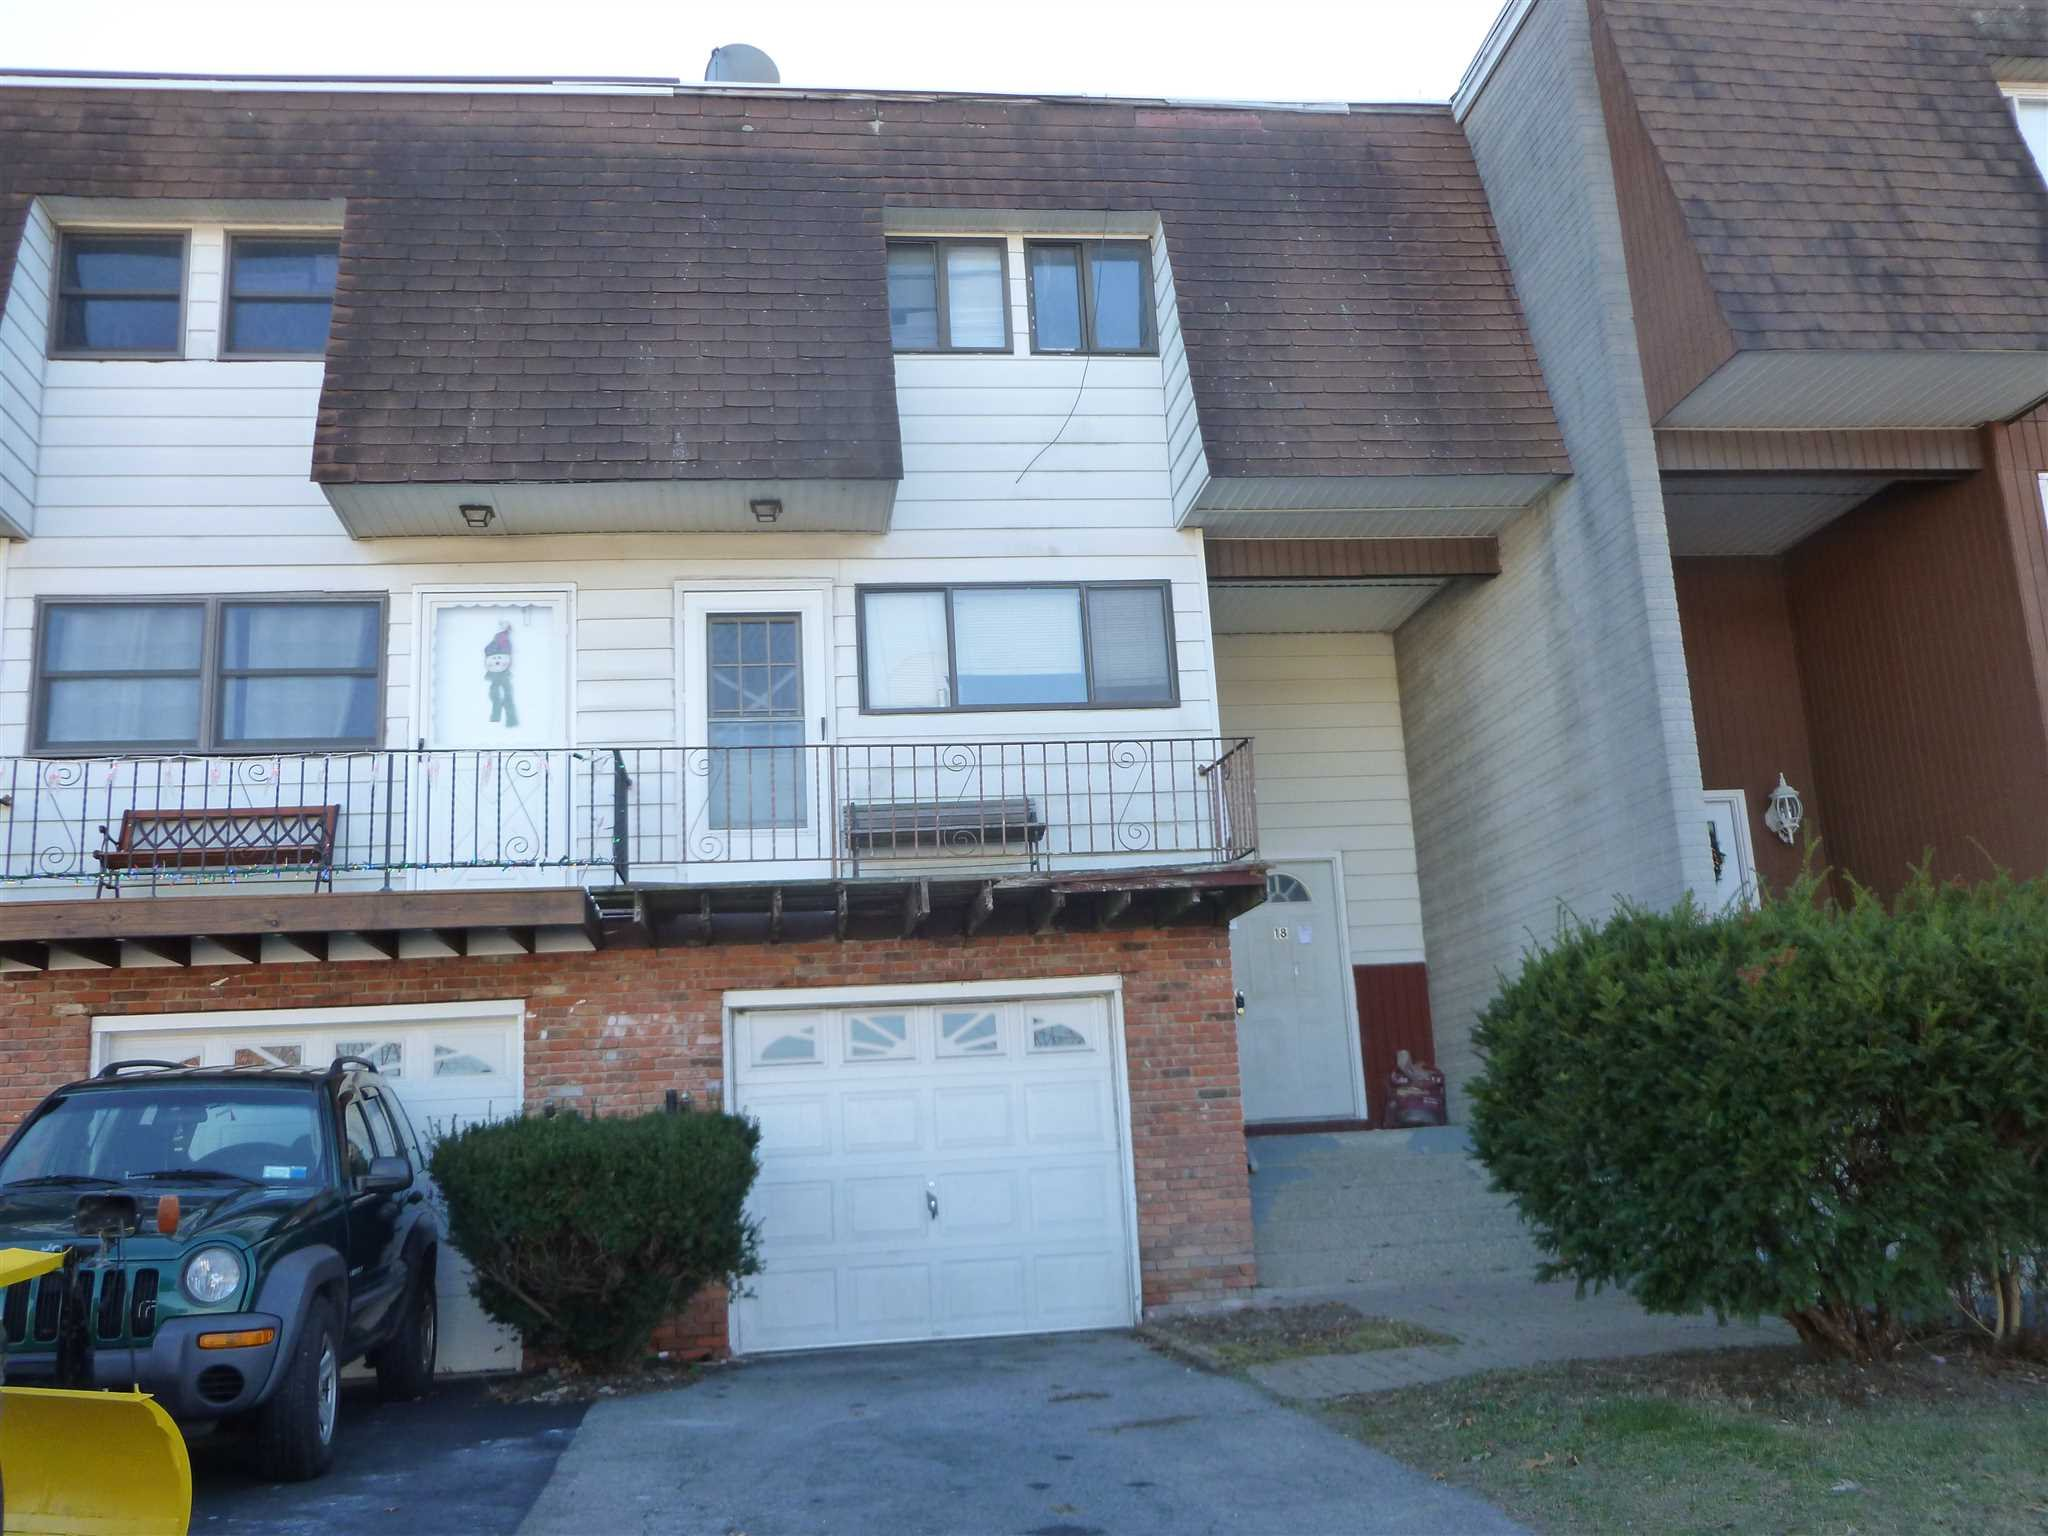 Single Family Home for Sale at 18 RUSSETT ROAD 18 RUSSETT ROAD Hyde Park, New York 12601 United States